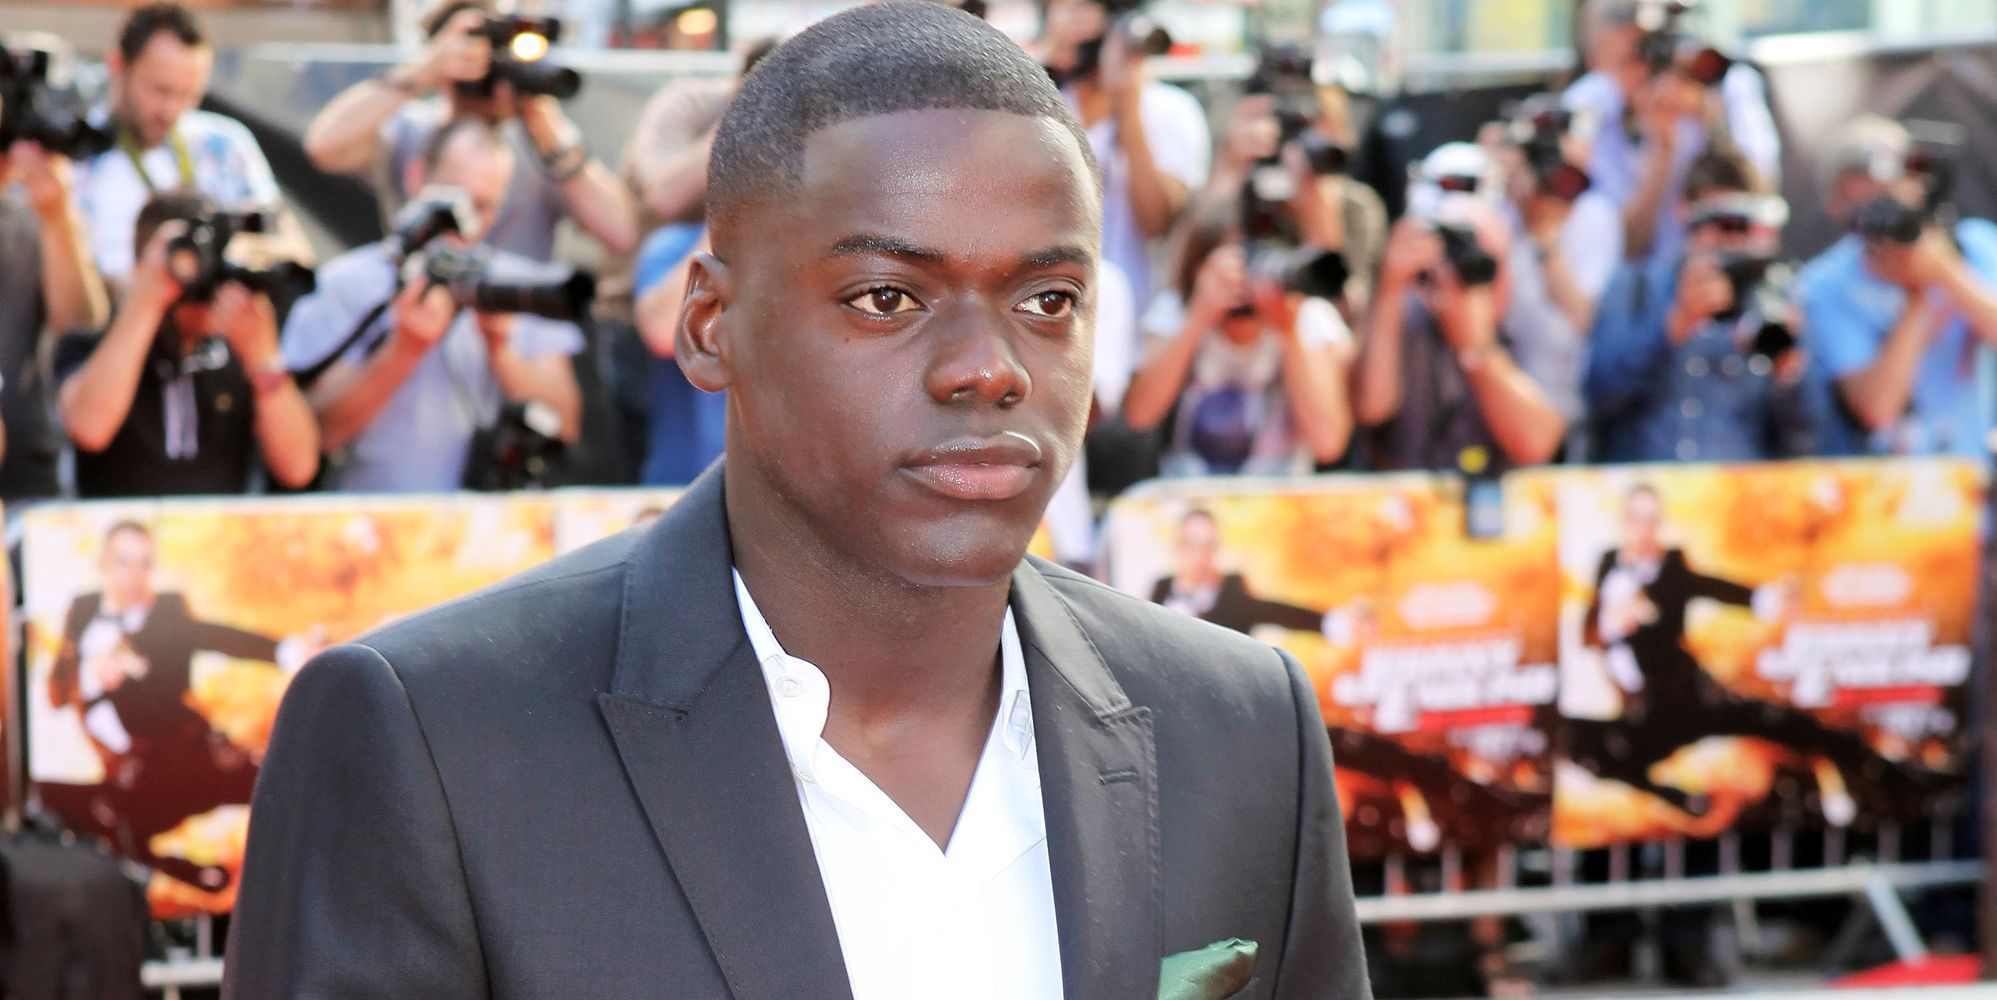 Daniel Kaluuya responds to Samuel L Jackson